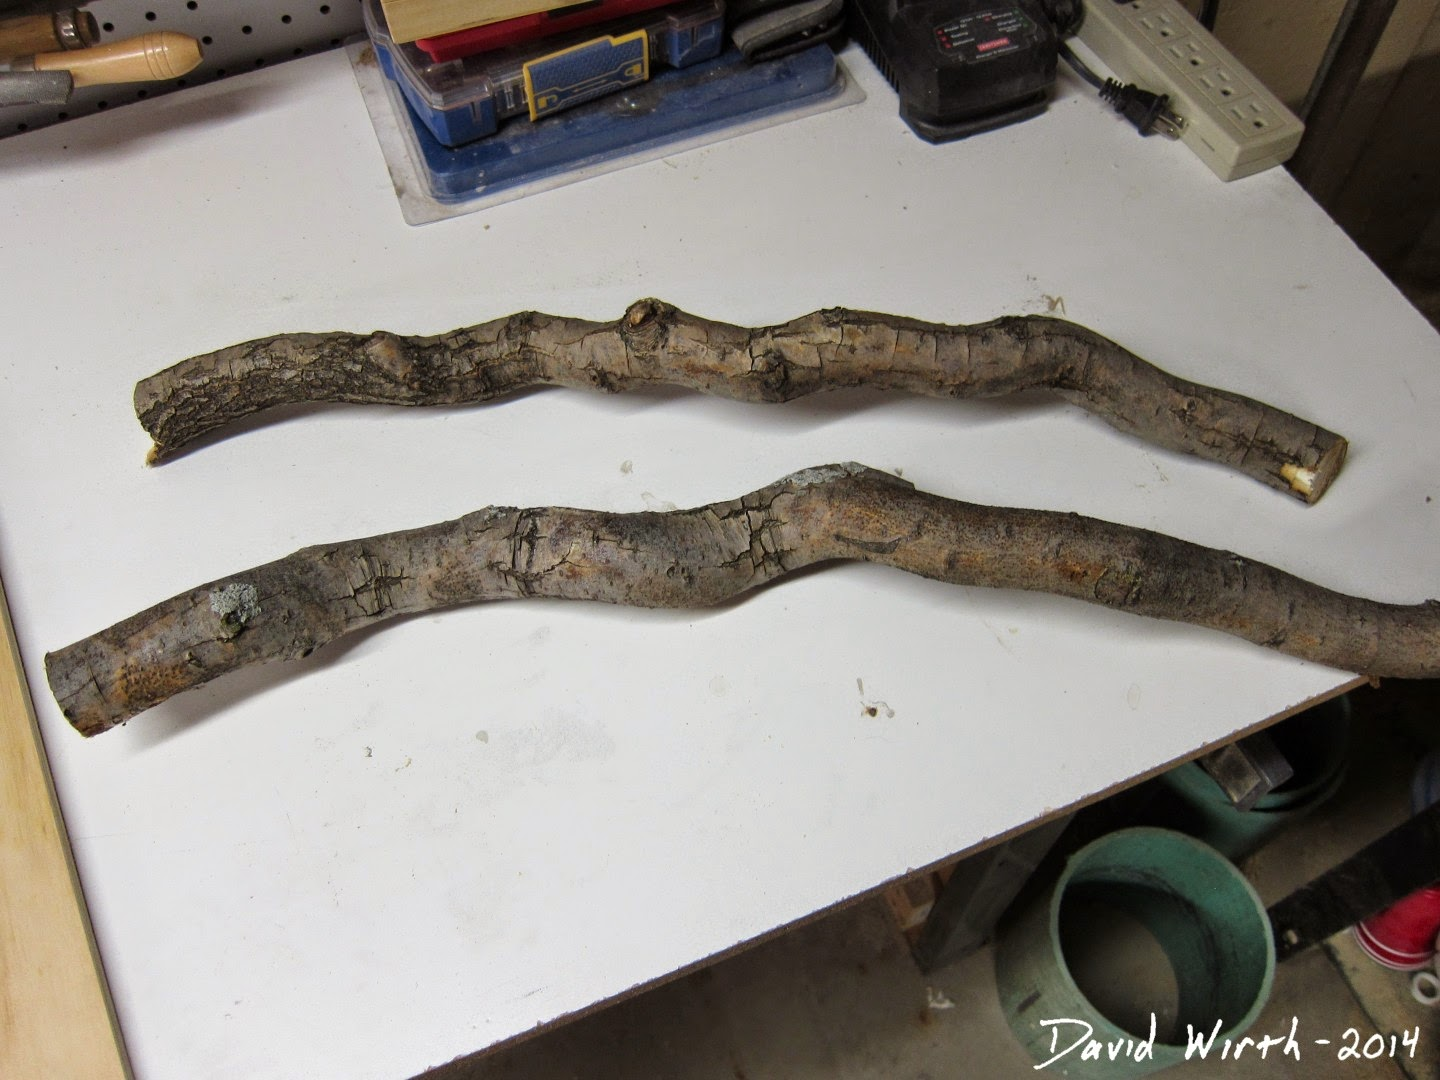 twisty wood branch, tree branch, wood handle